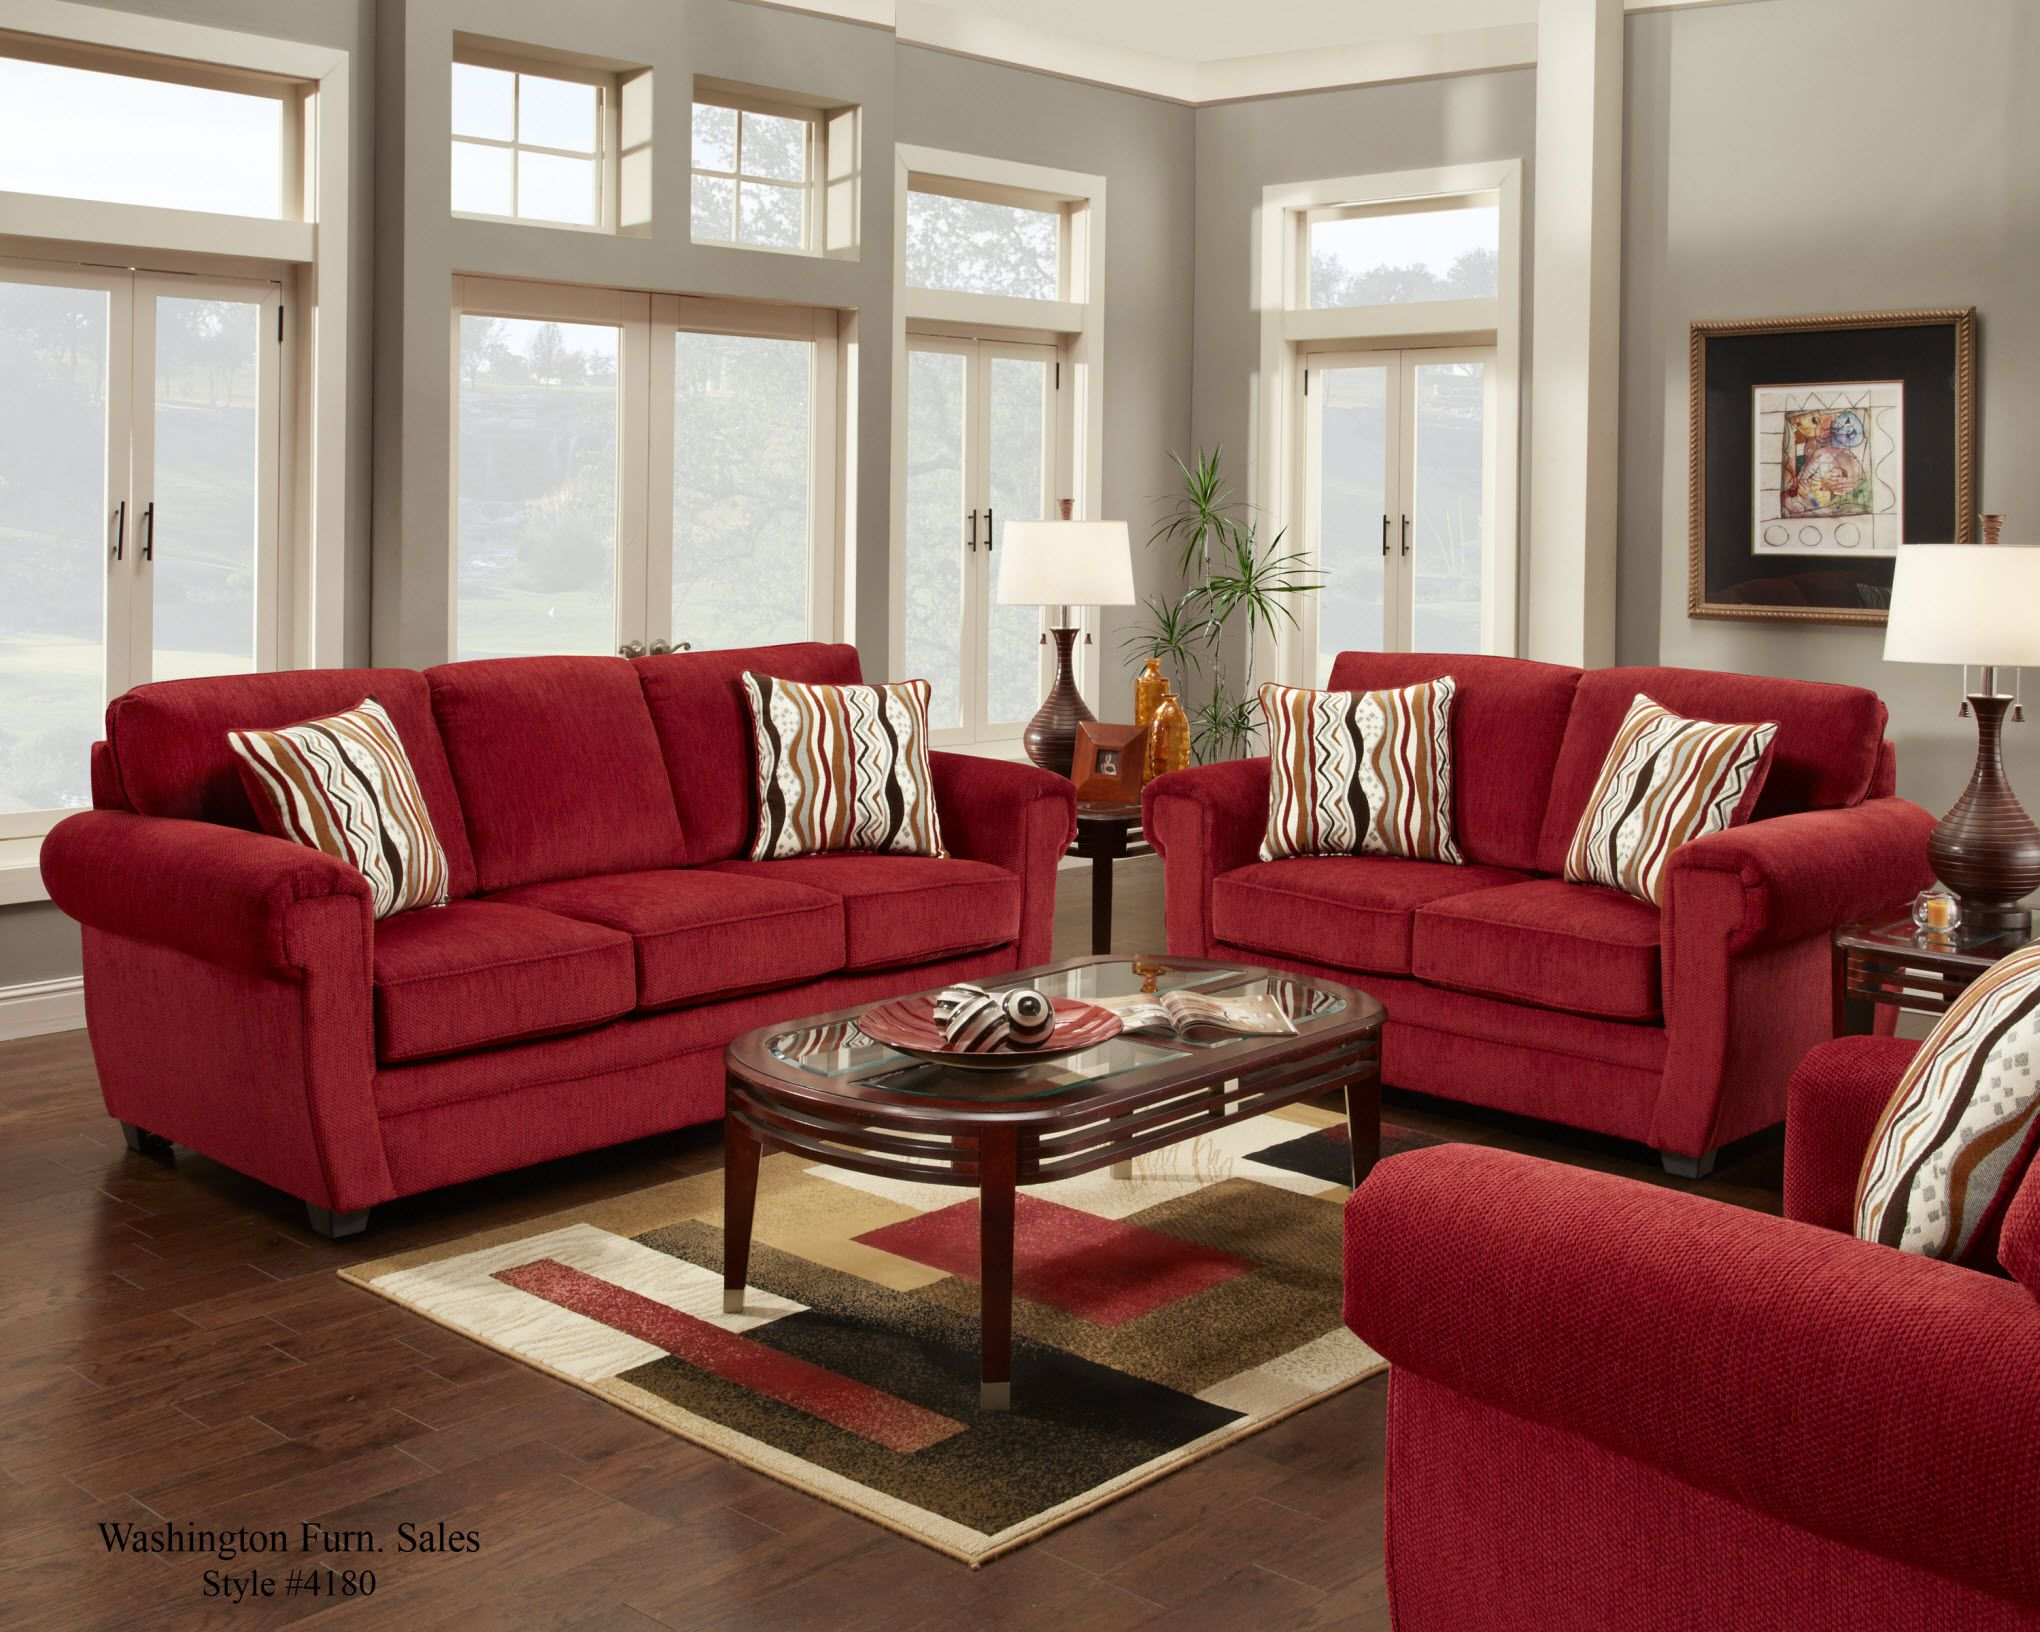 4180 washington samson red sofa and loveseat www for Red living room furniture